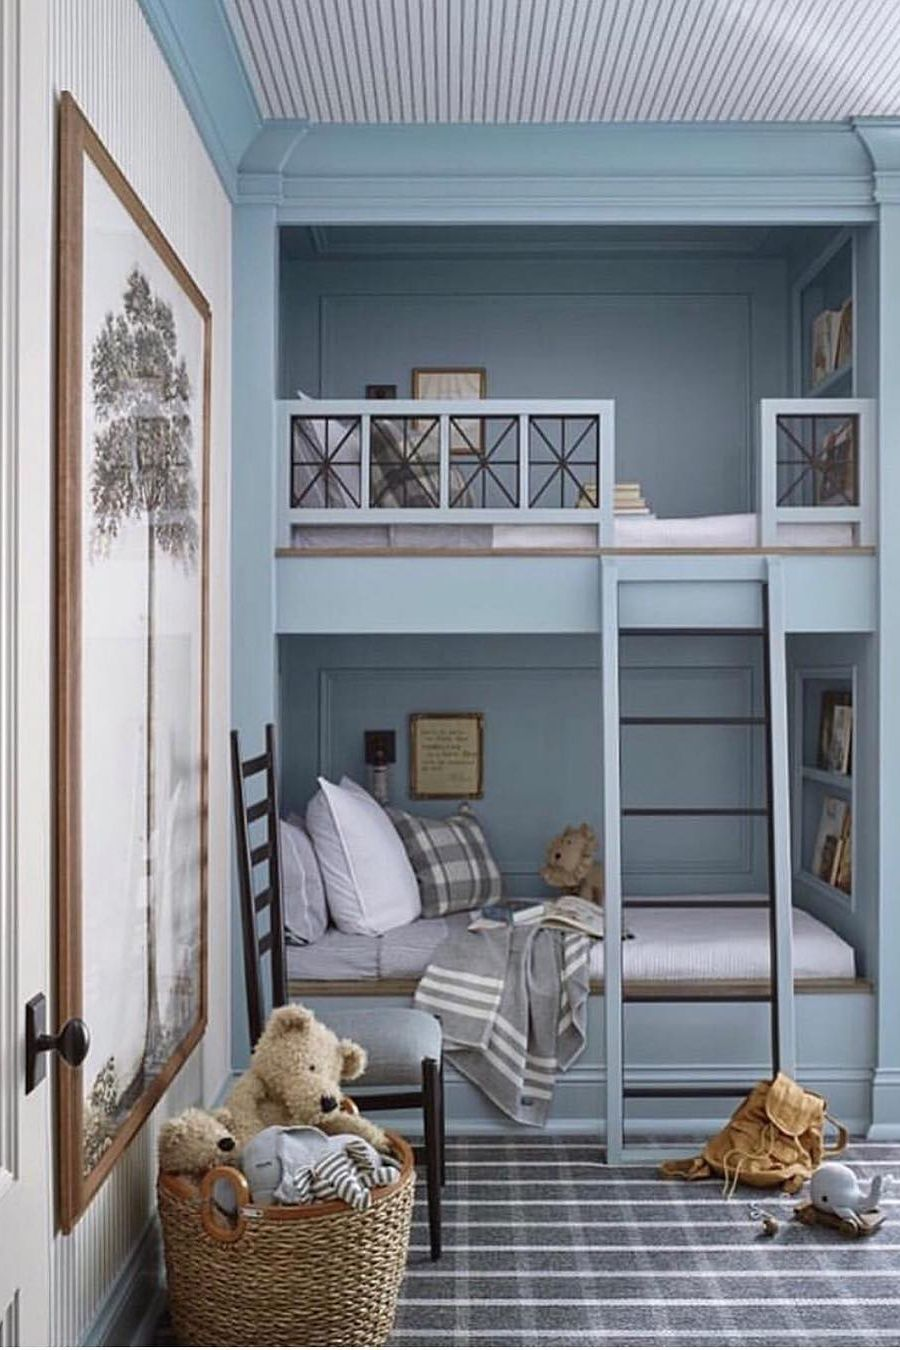 65 Amazing Small Bedroom Ideas To Create Space Bedroom Decor Bunk Beds Built In Built In Bunks Bunk Bed Designs